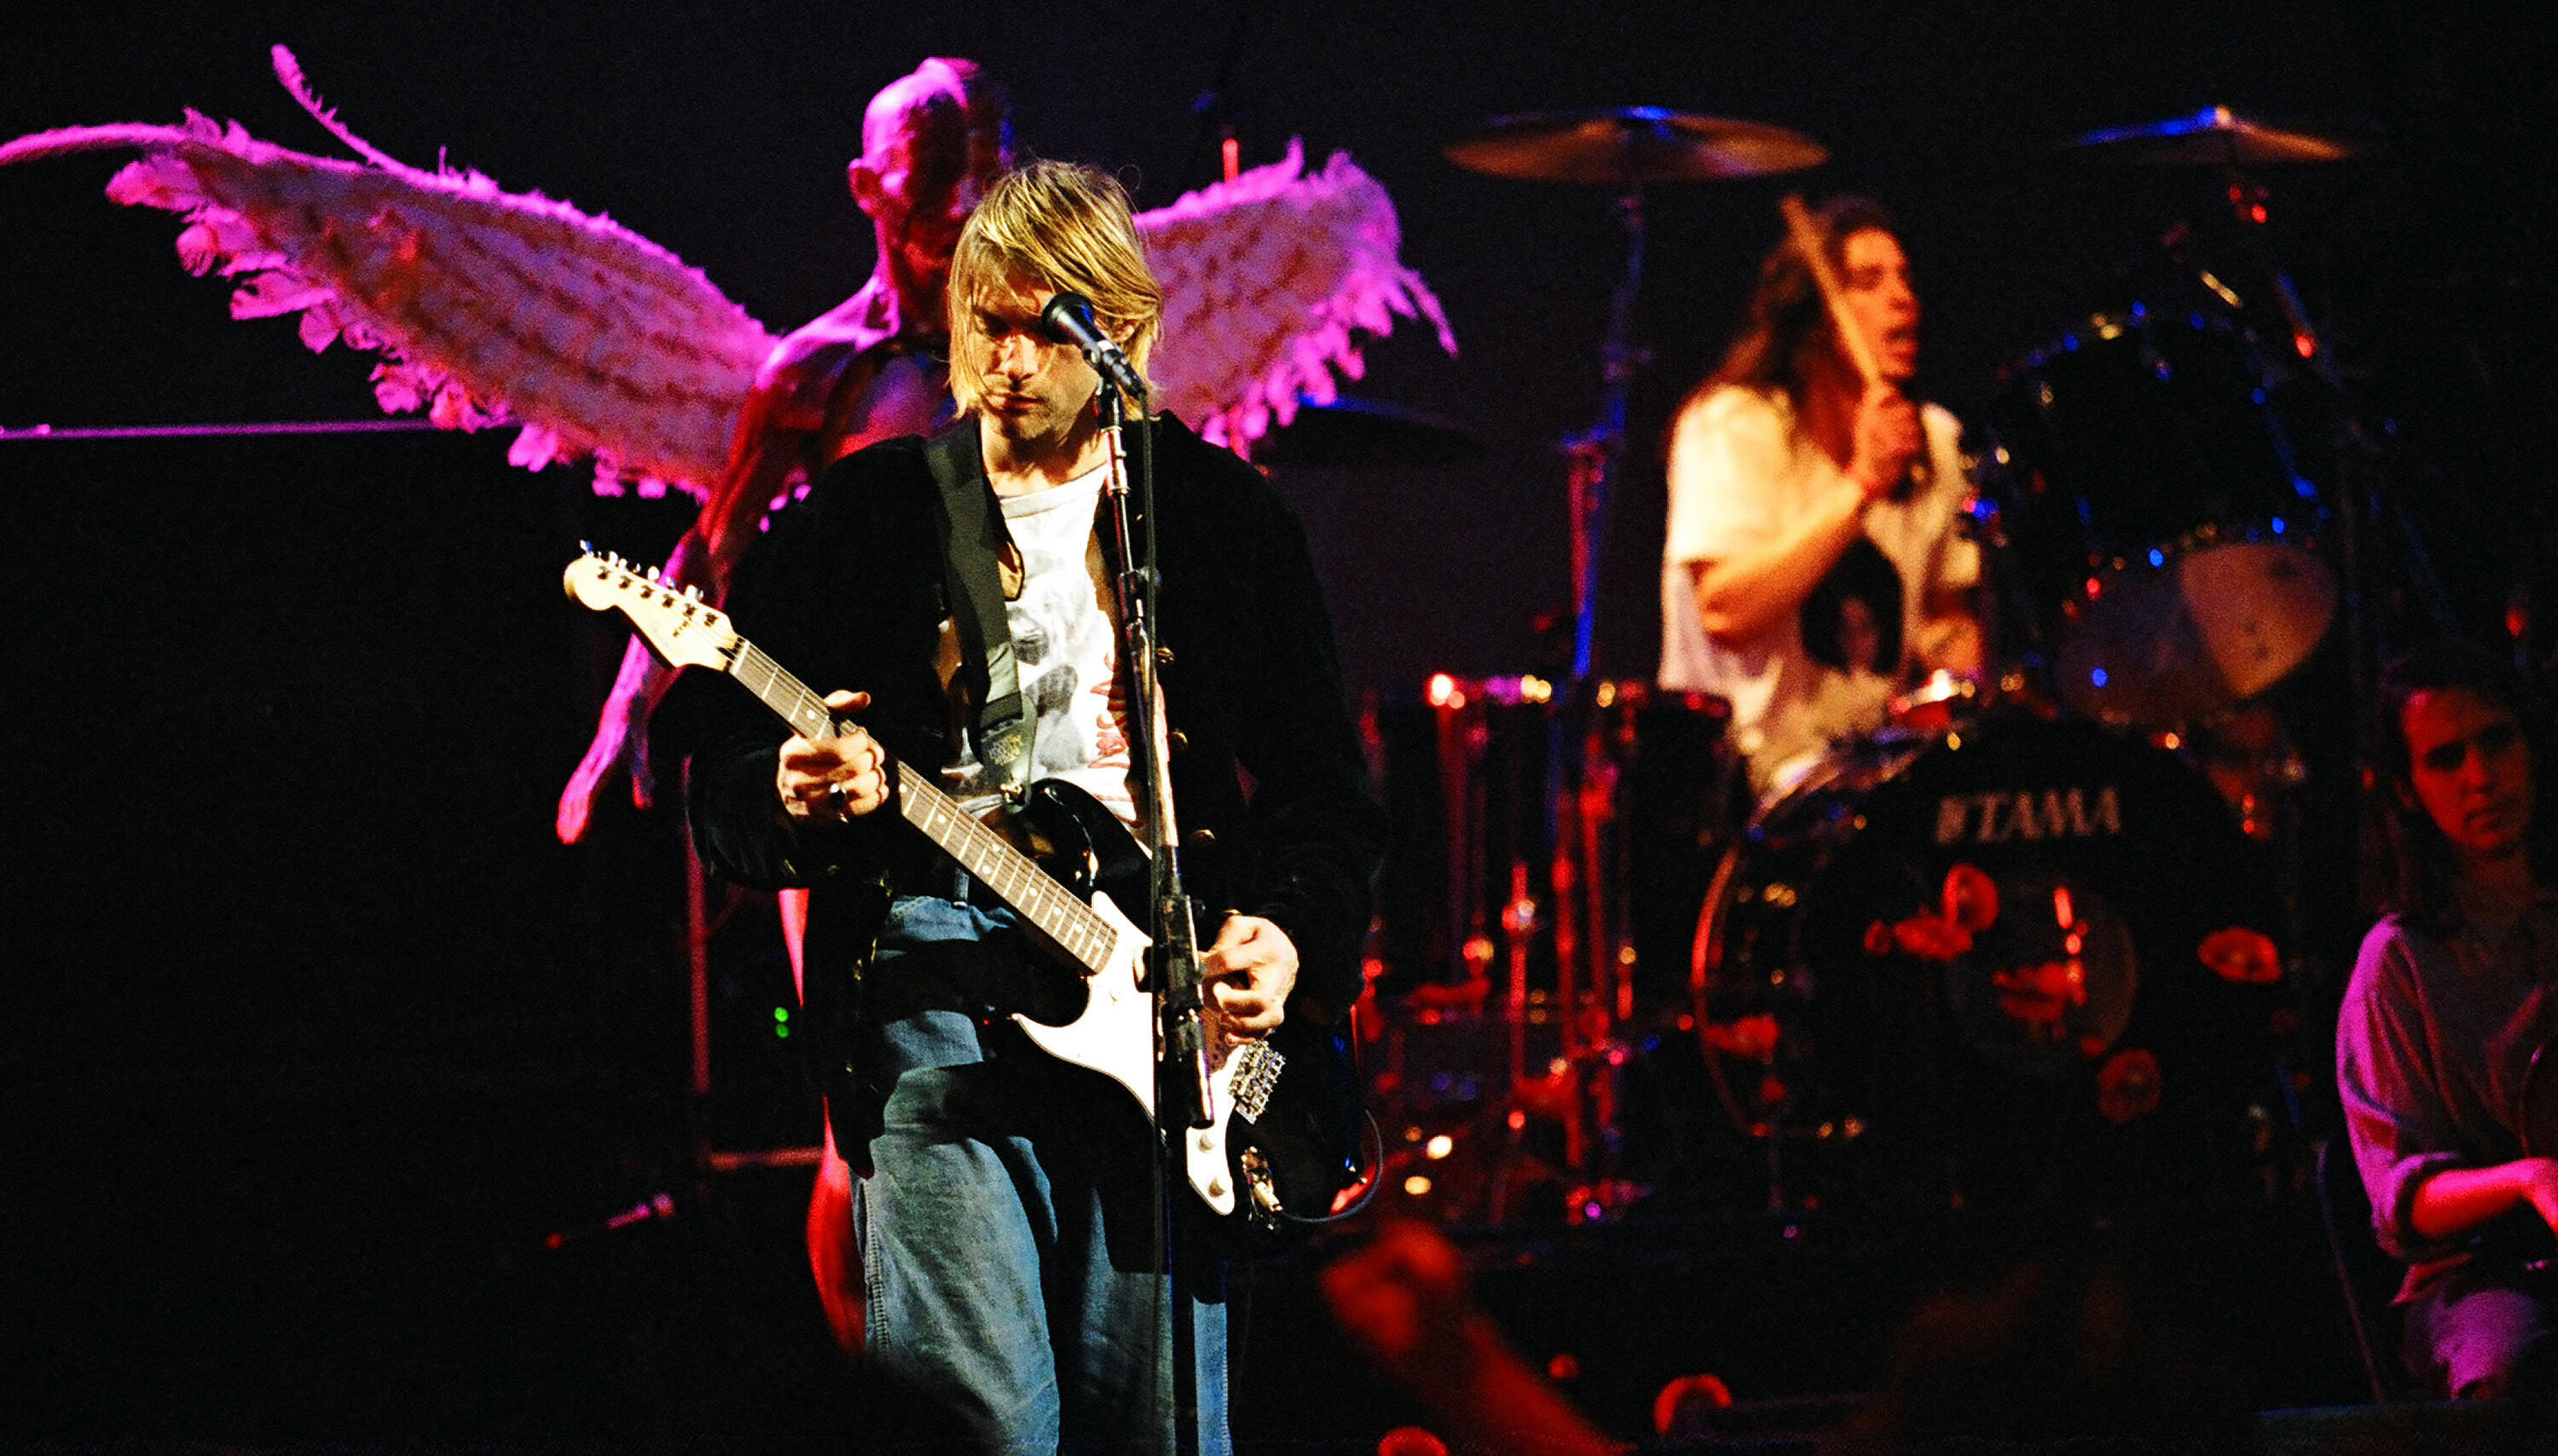 FBI Reveals Kurt Cobain File, How It Responded To Questions About His Death